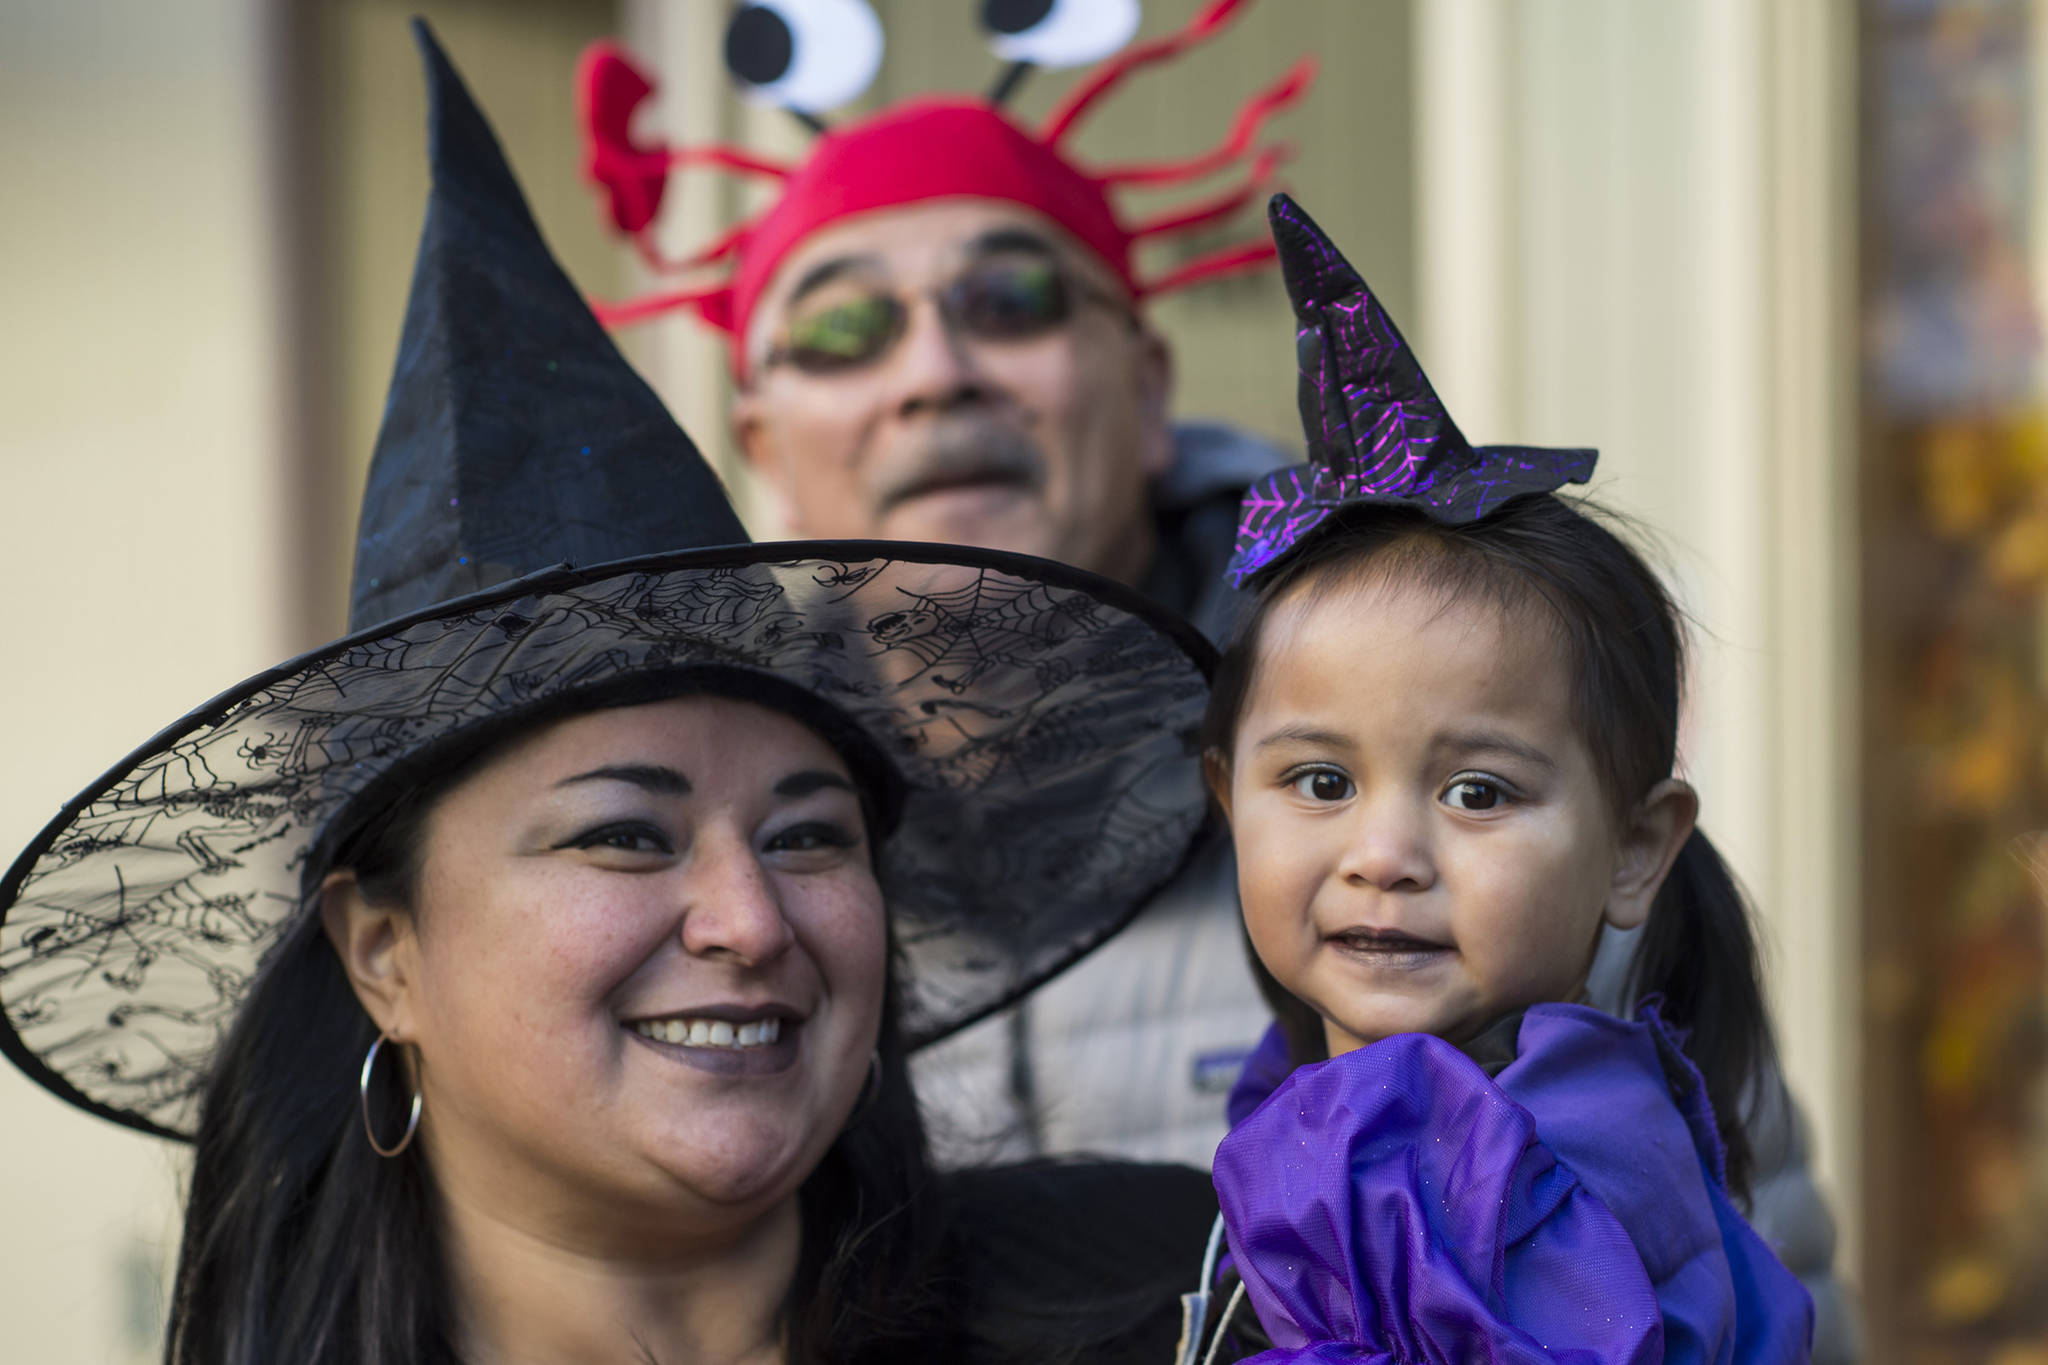 Photos: Trick-or-treating in downtown Juneau